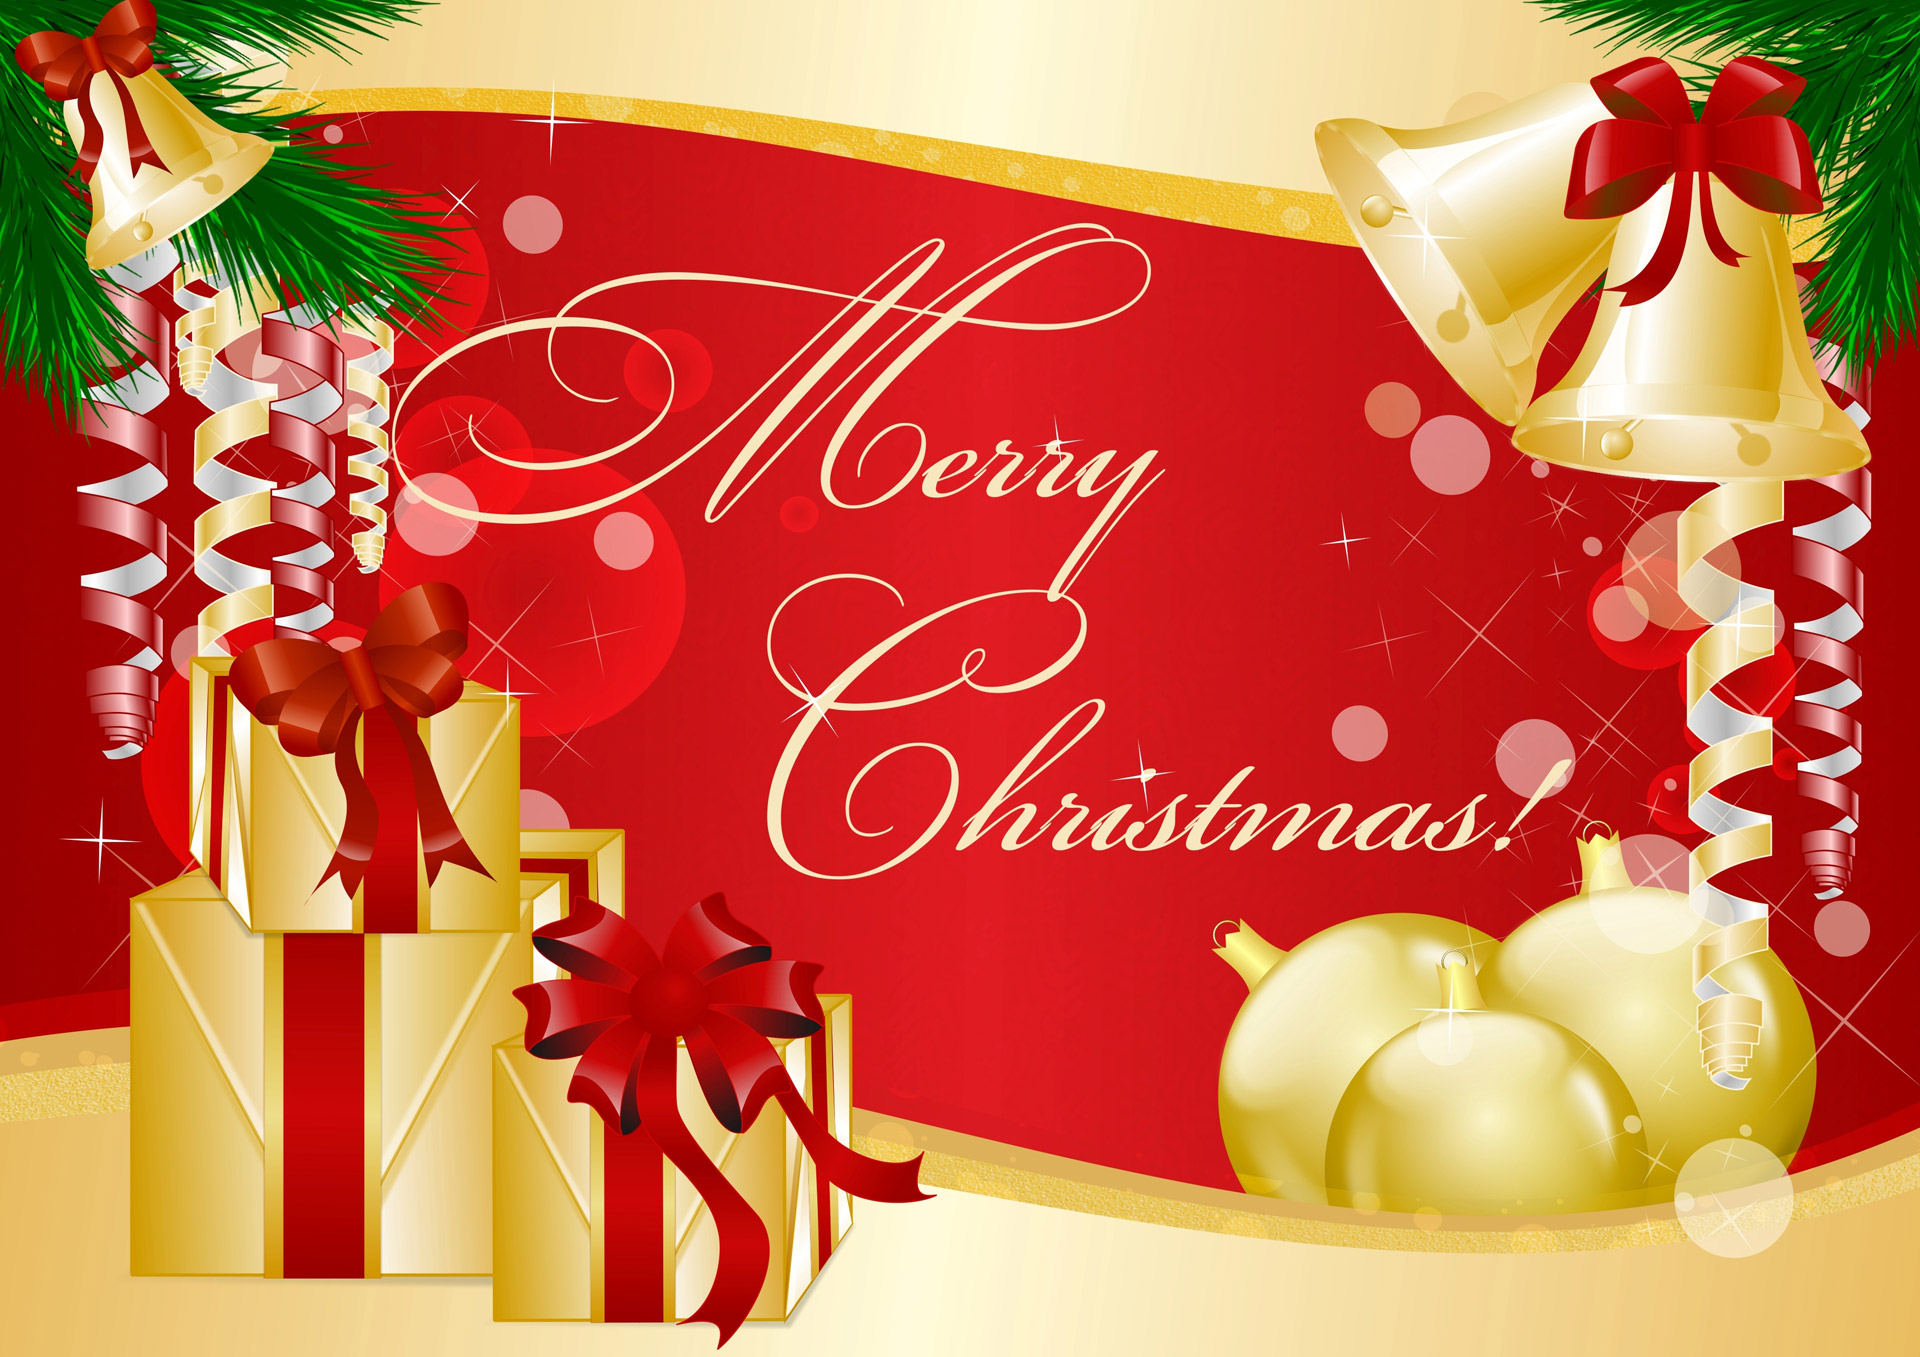 Merry Christmas! We are closed today for the holiday. - Simply Ballroom